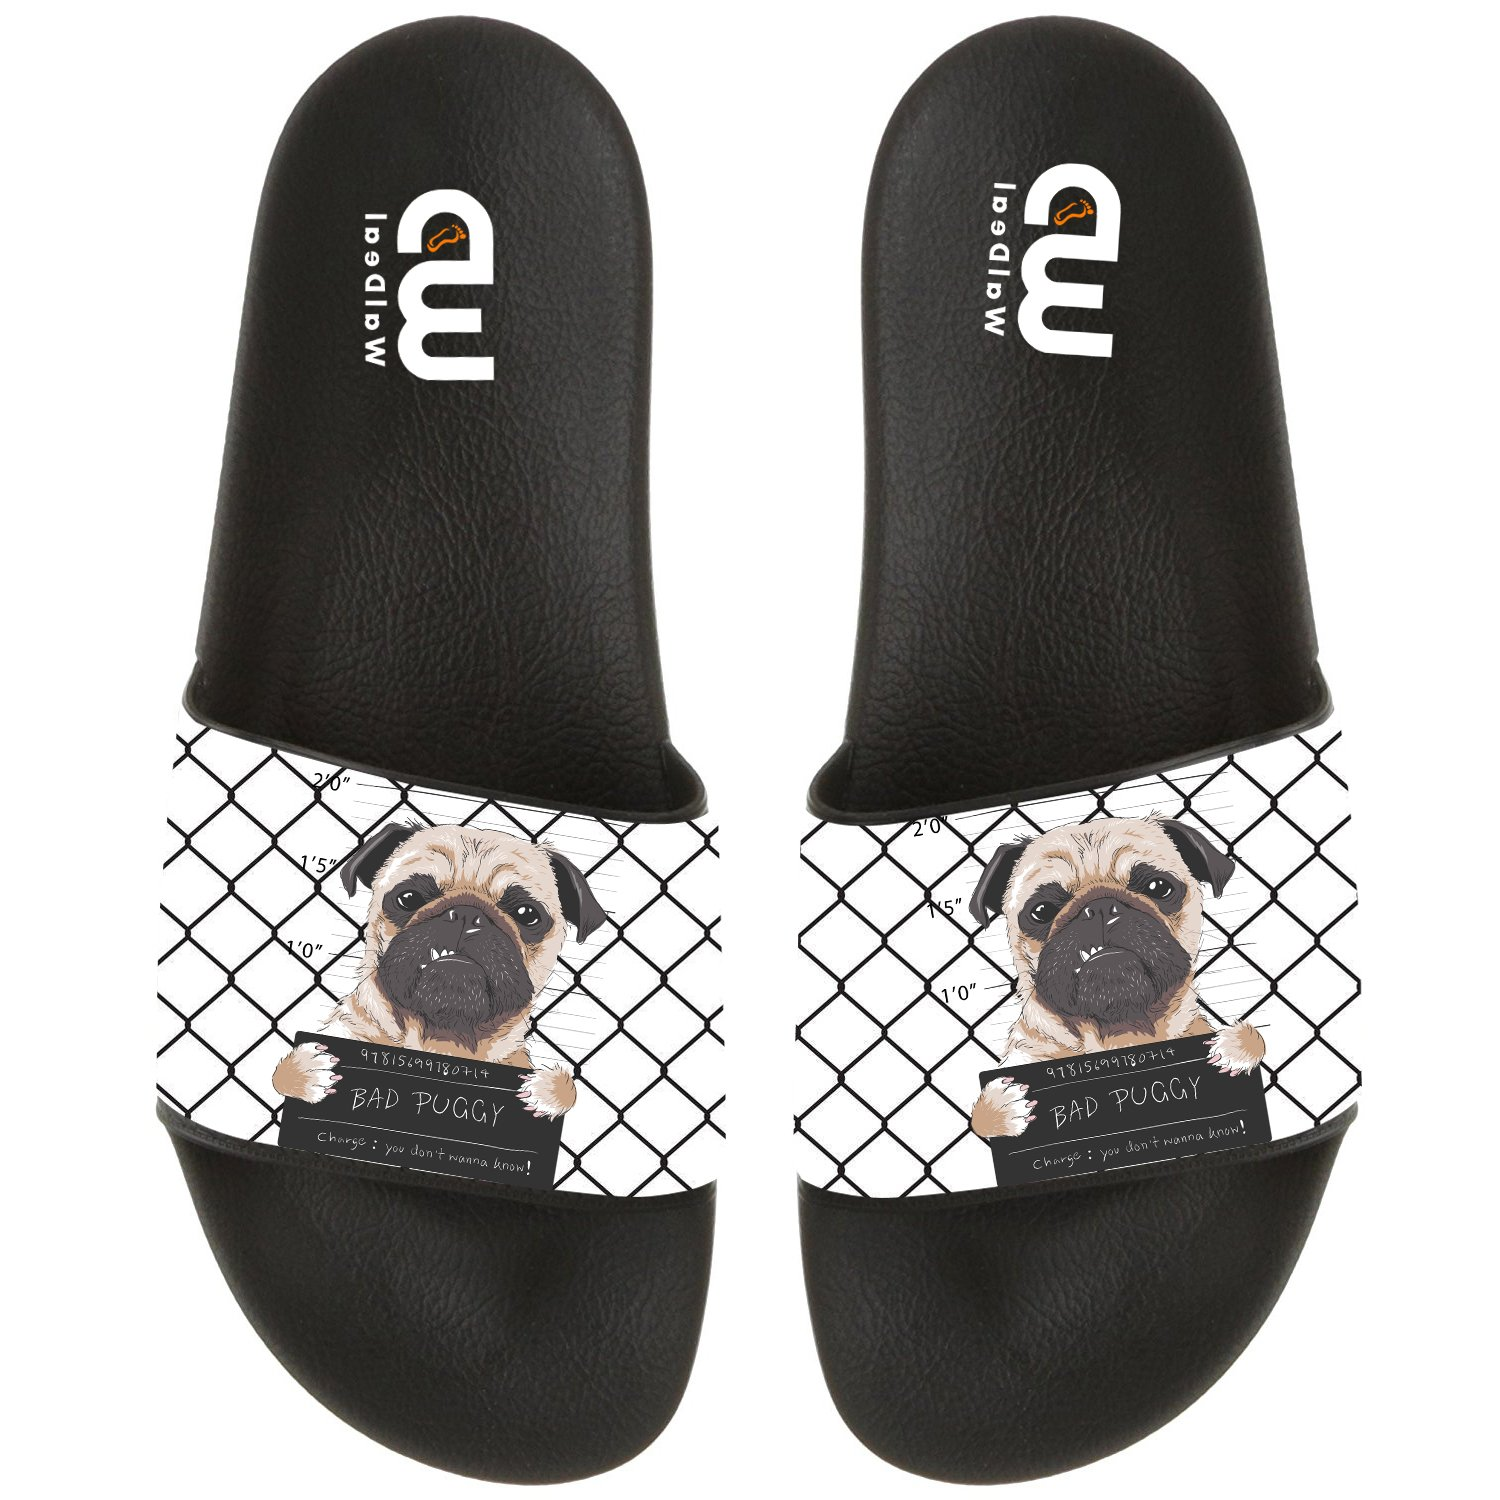 Funny Cartoon Bad Dog Pug Prisoner Summer Slide Slippers For Boy Girl Outdoor Beach Sandal Shoes size 3